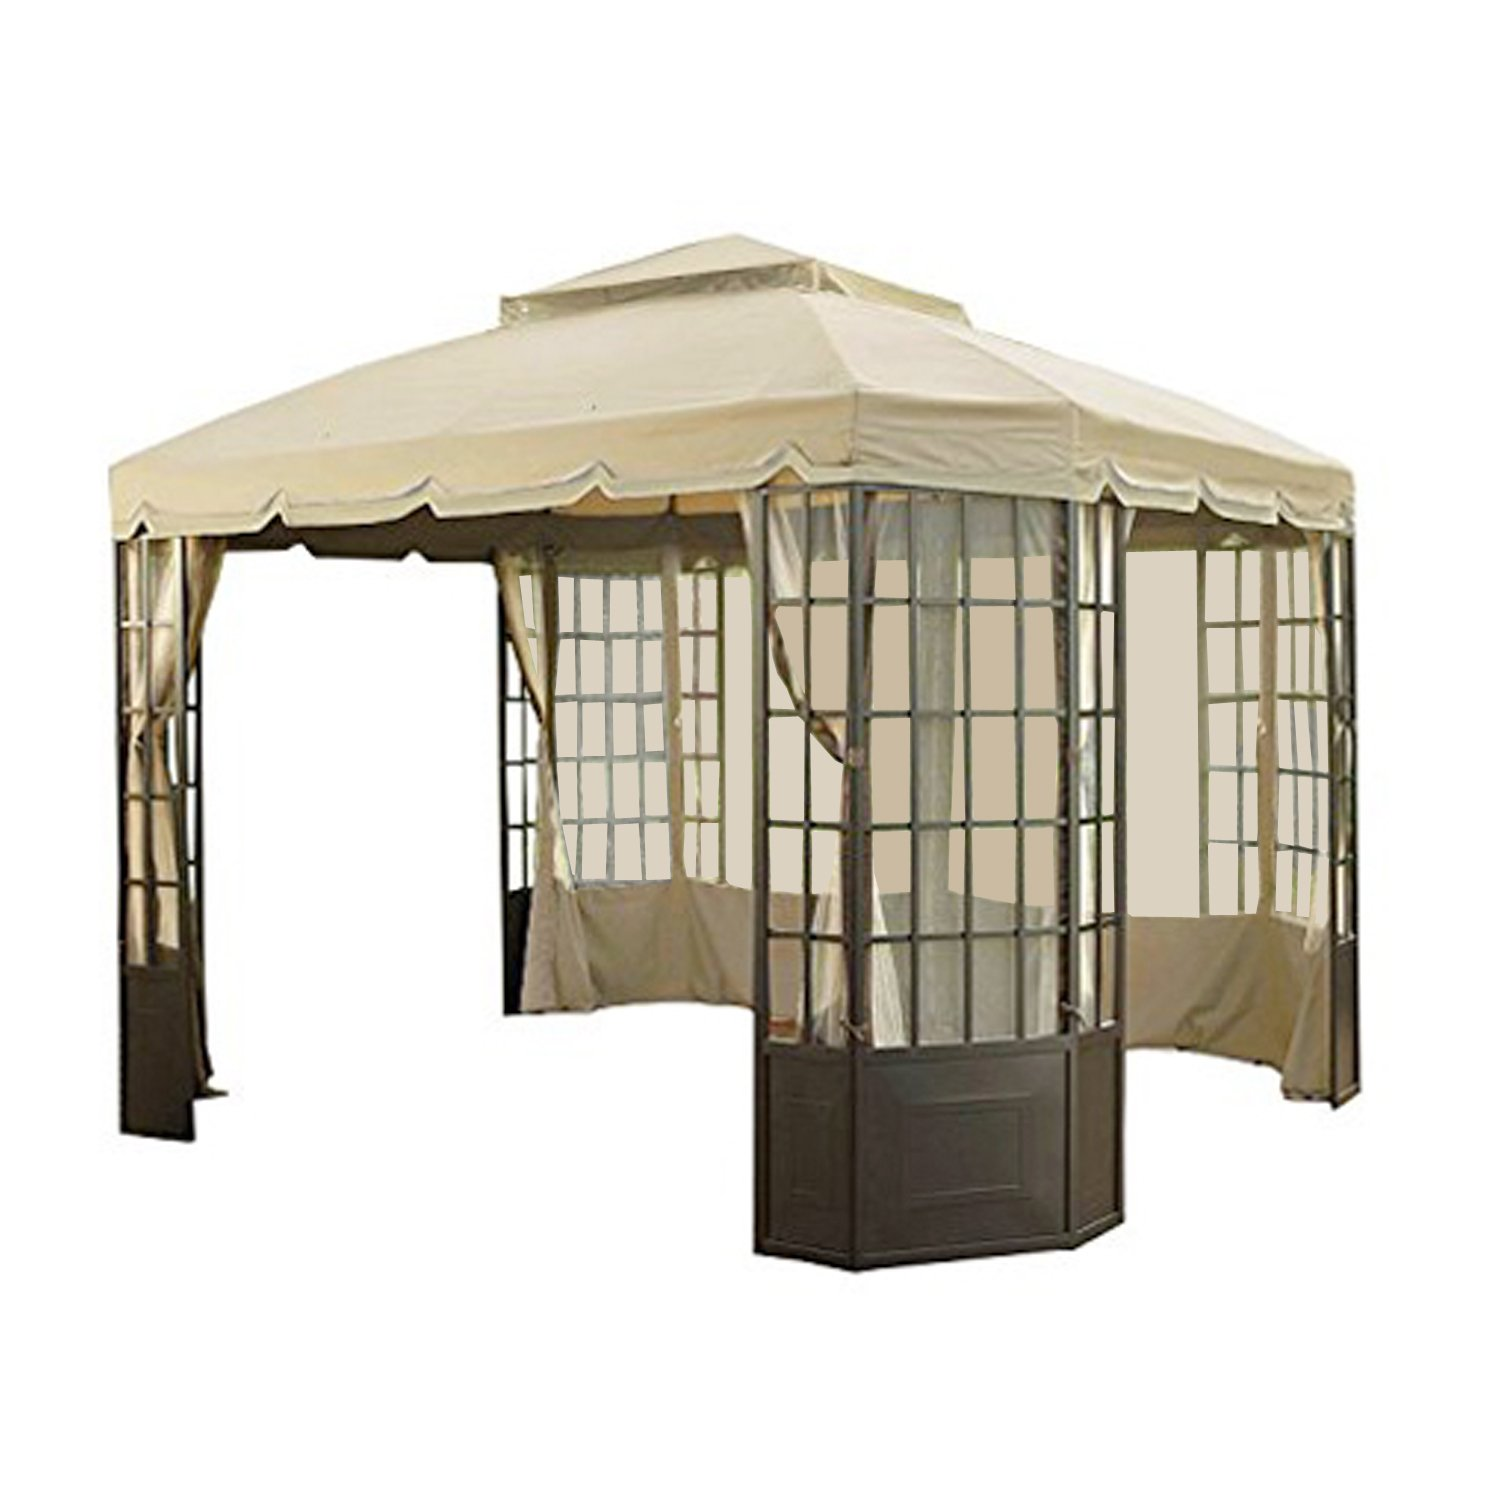 Garden Winds Replacement Canopy Set for the Sears Bay Window Gazebo, with Ultra Stitch and Dura Pockets LCM438BREV